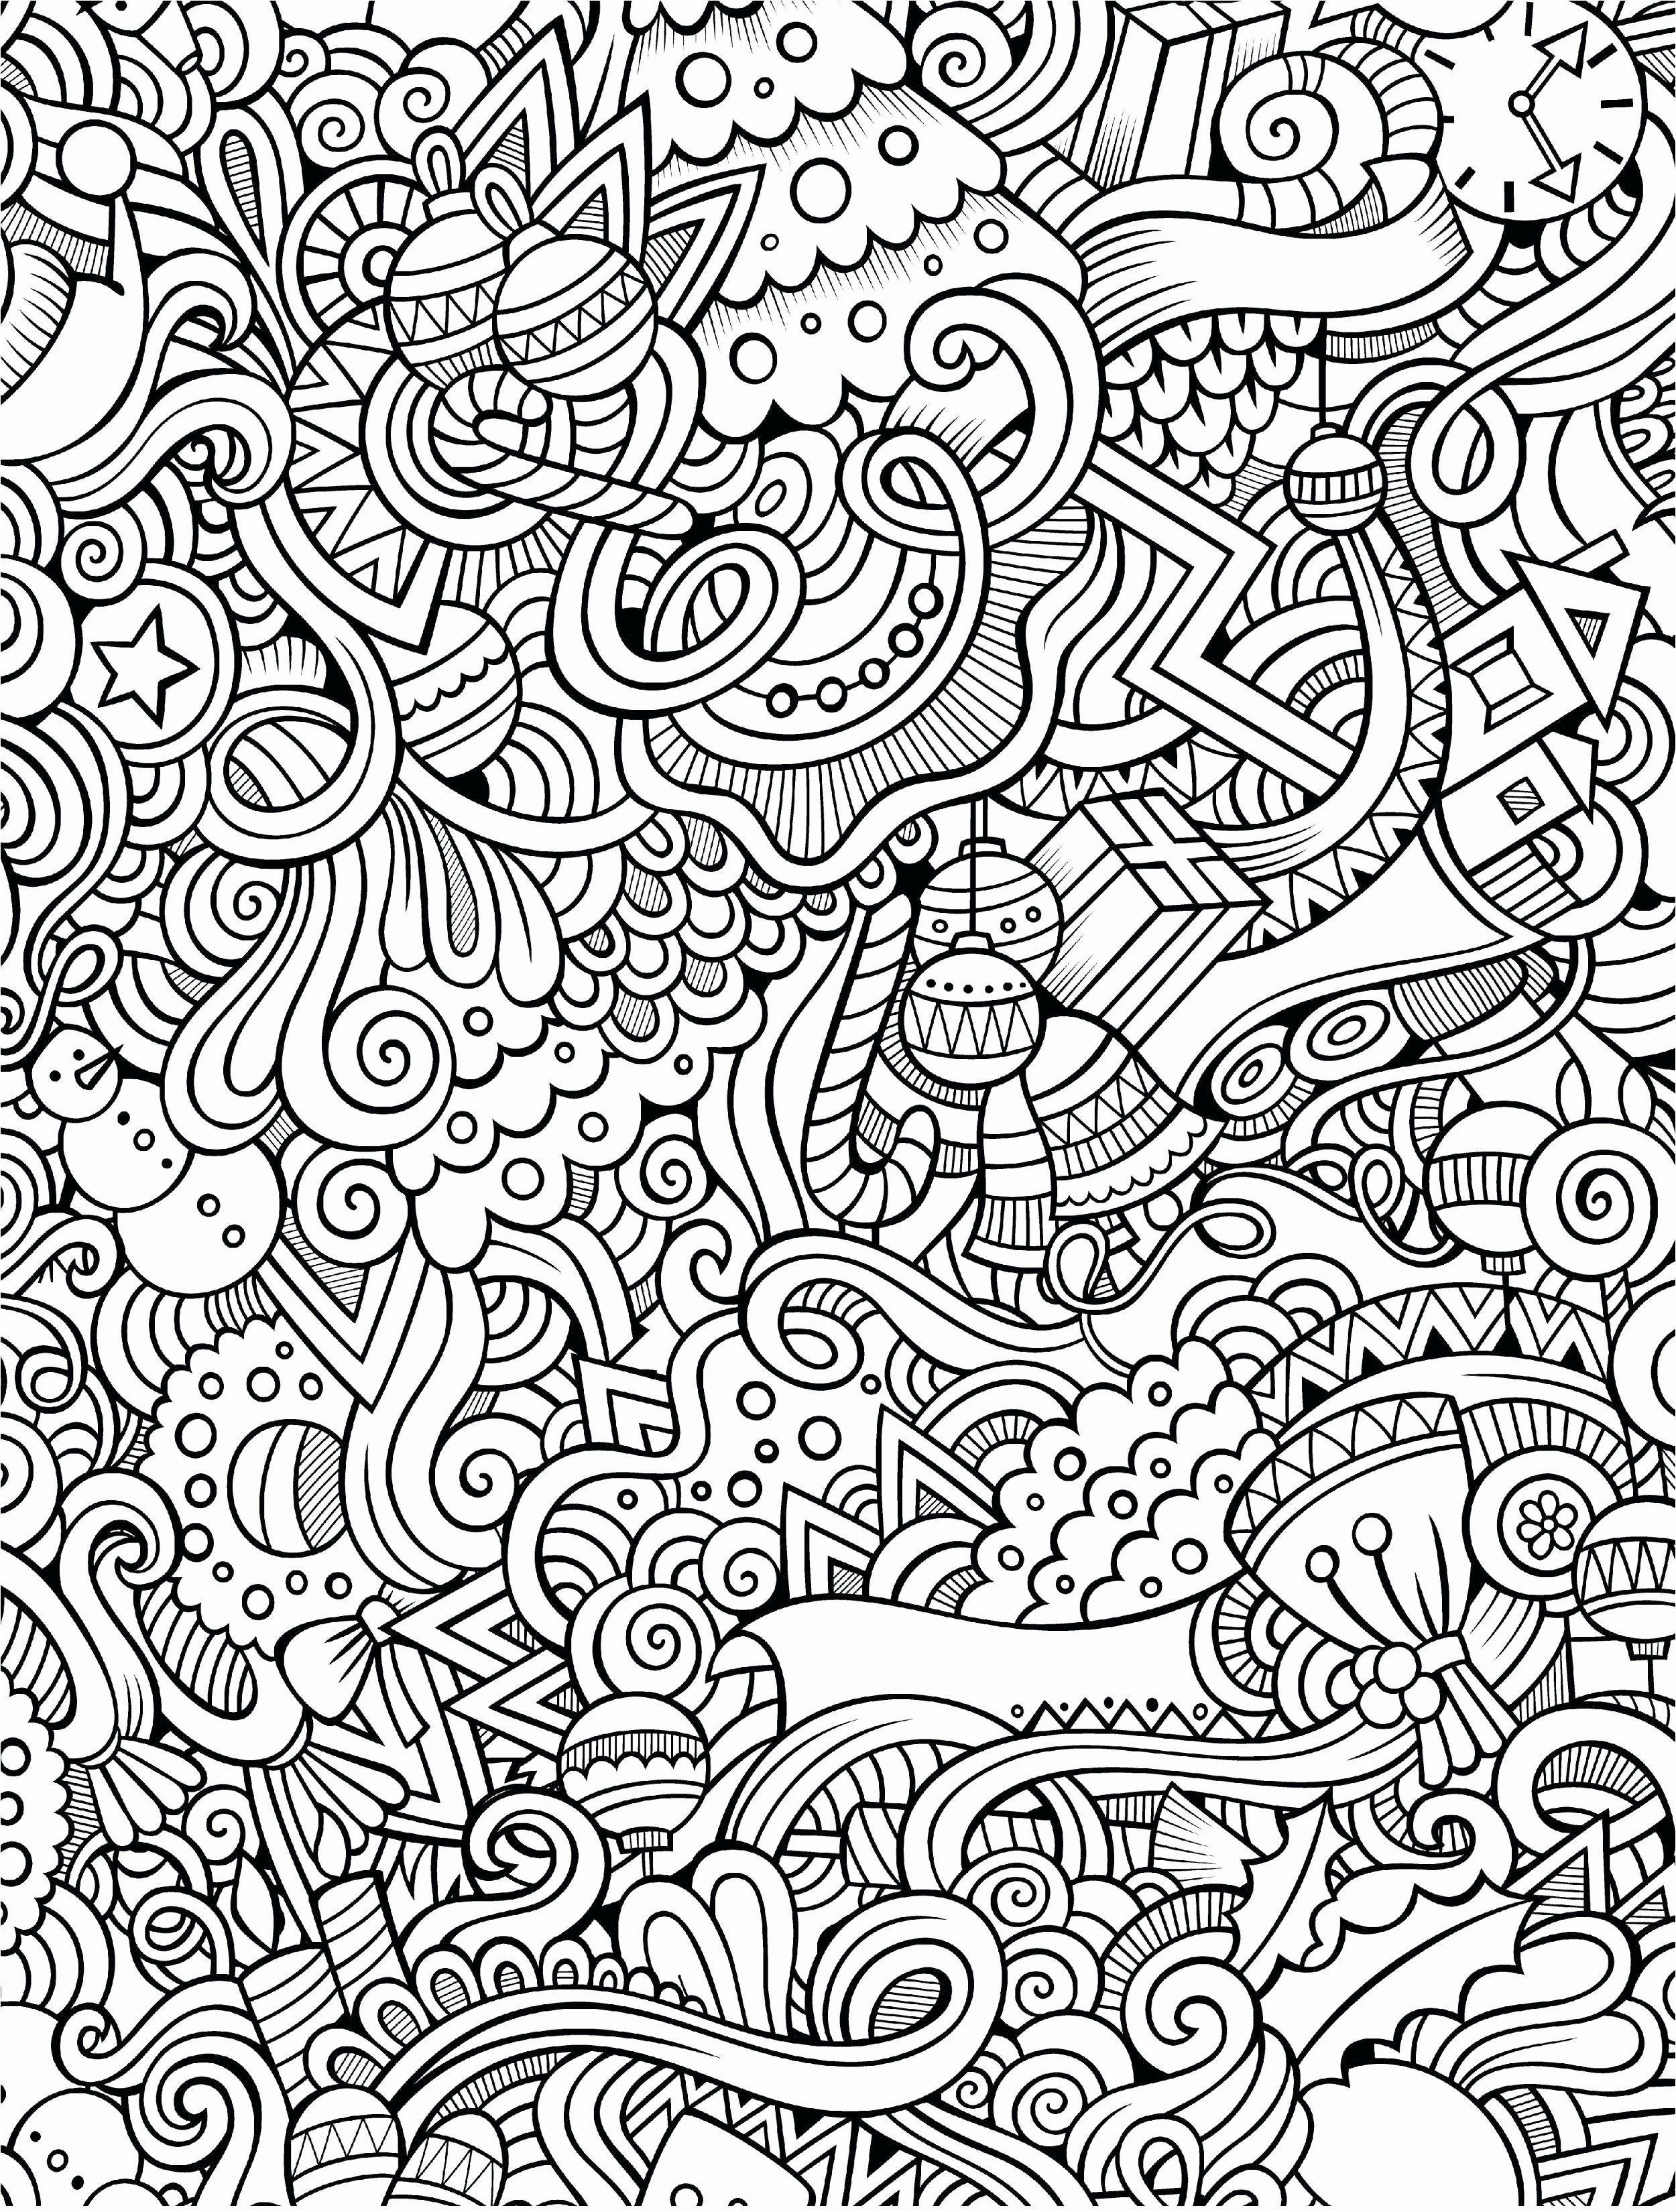 picture regarding Printable Skull Coloring Pages titled 25 Free of charge Printable Skull Coloring Internet pages Range - Coloring